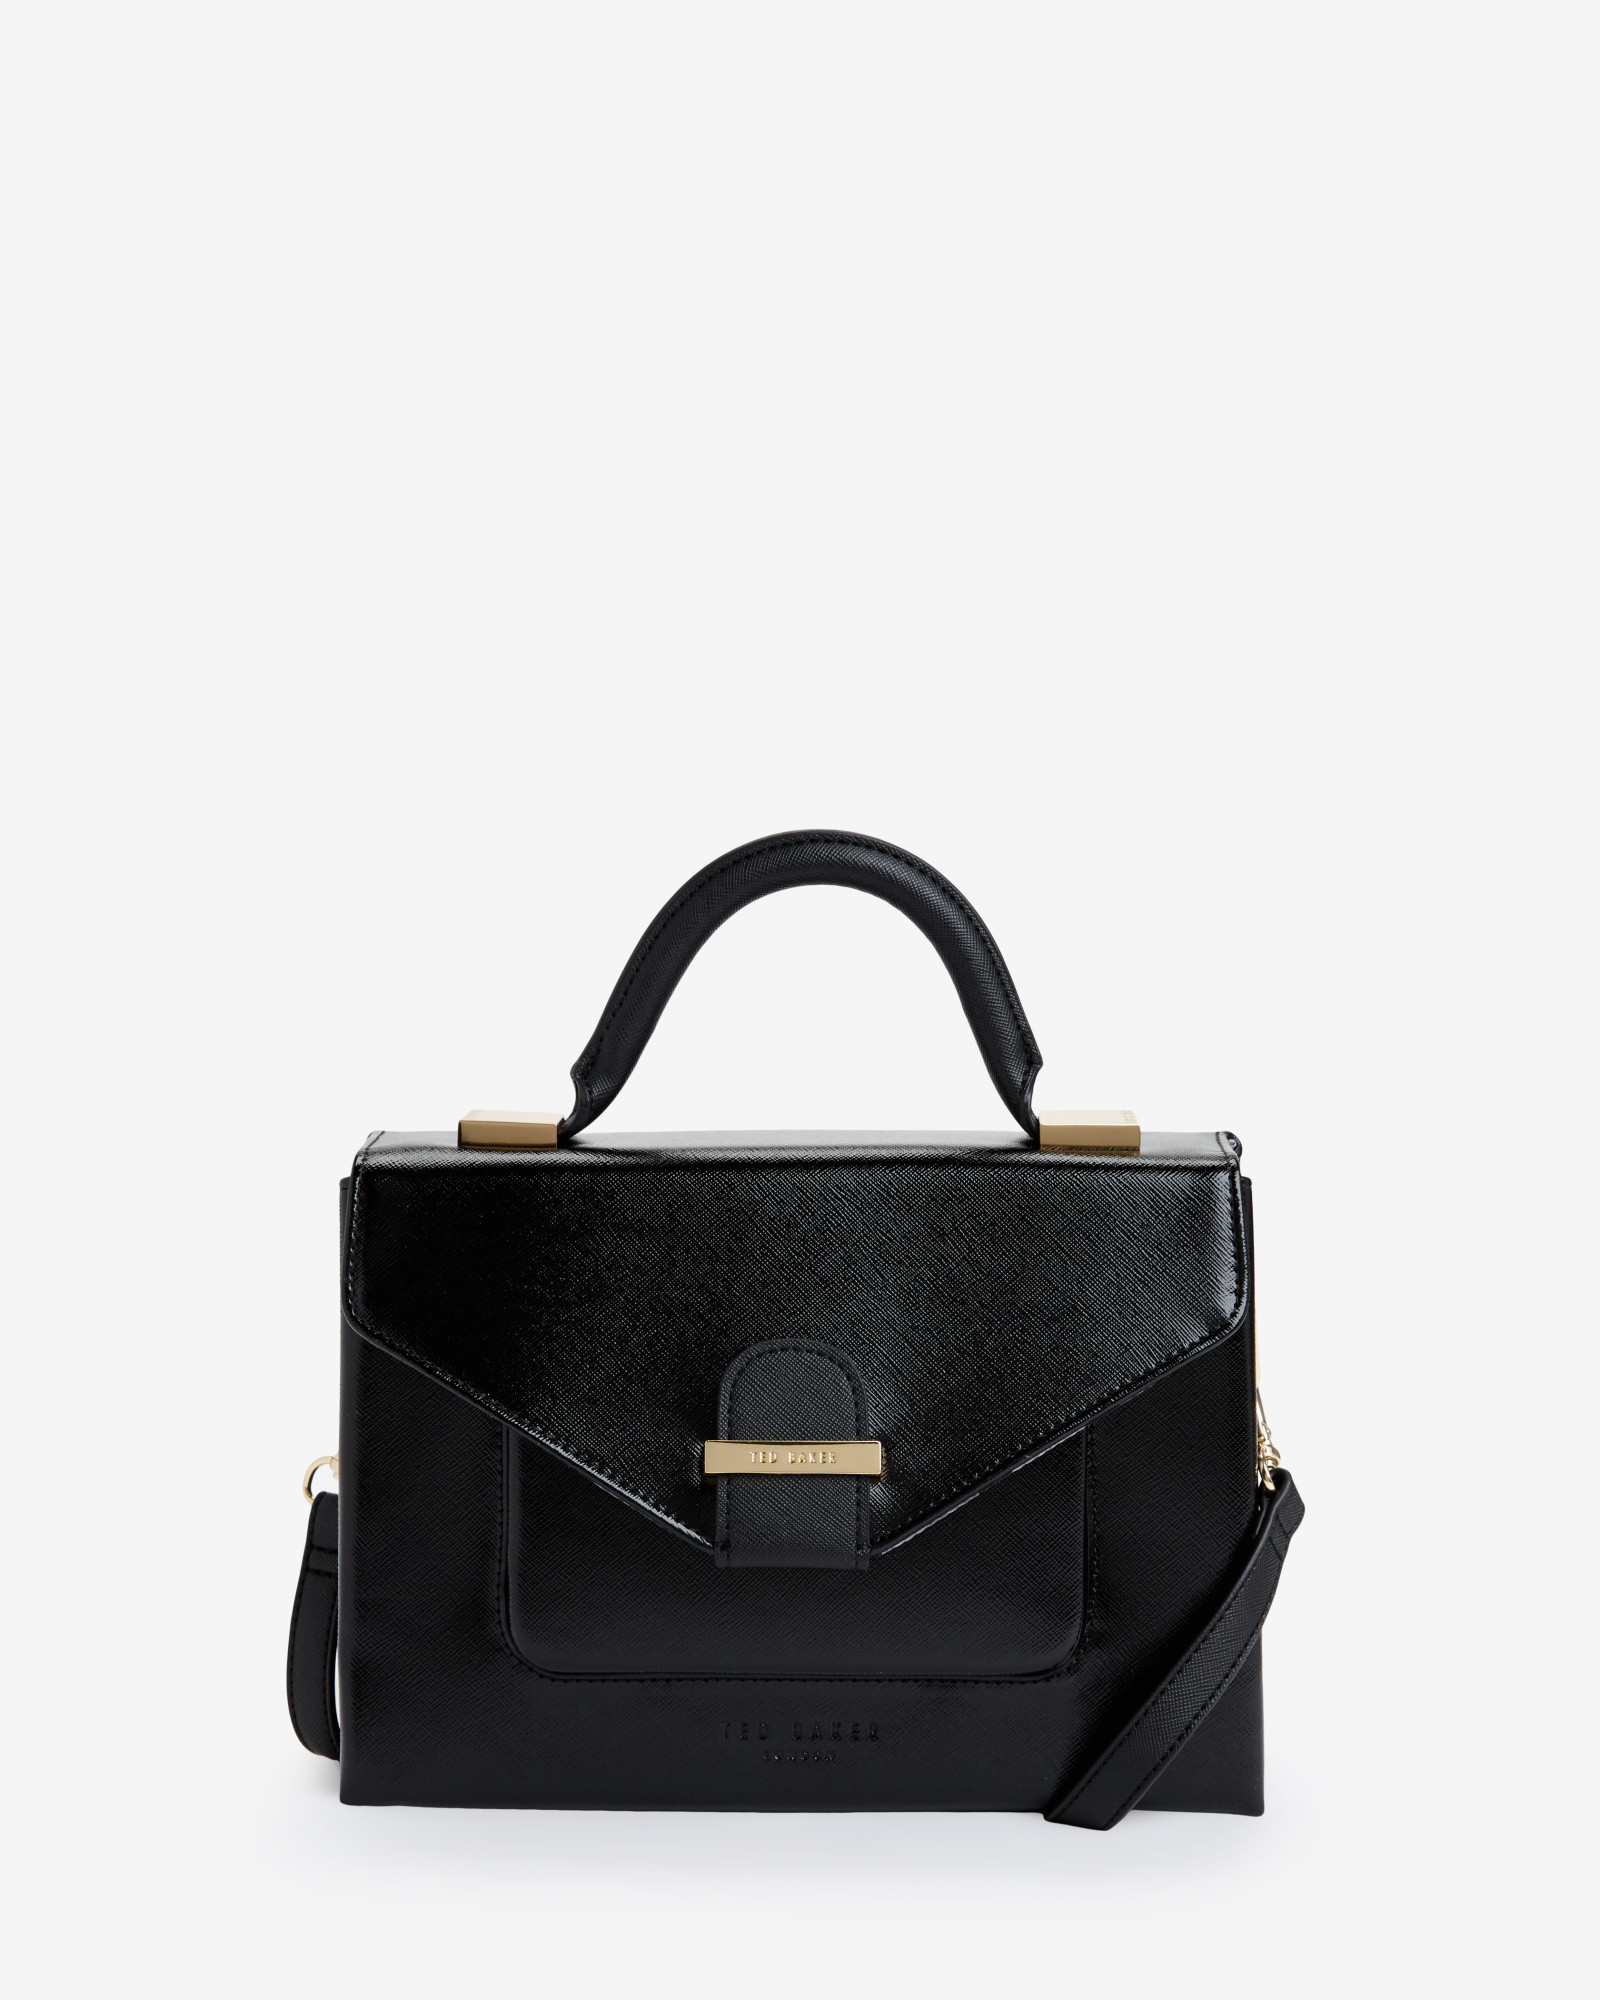 Ted baker Small Crosshatch Patent Tote Bag in Black | Lyst